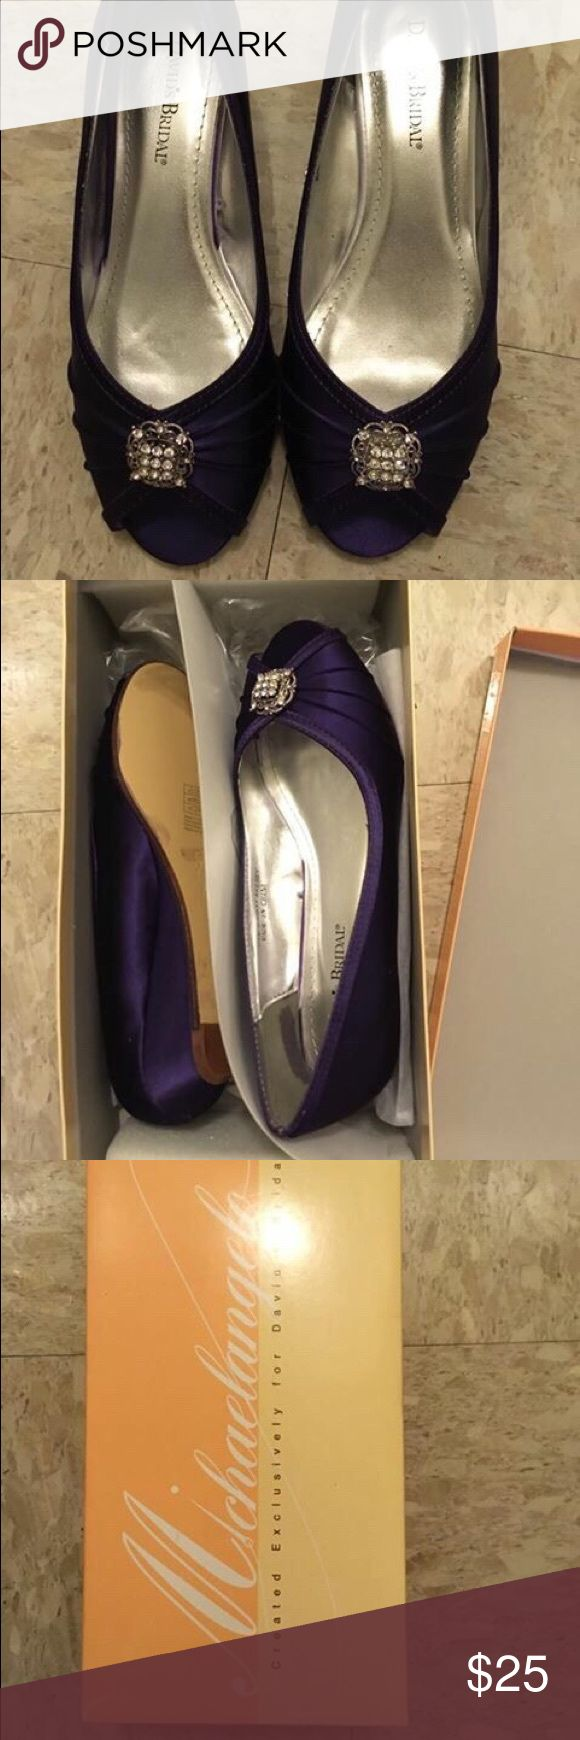 David's Bridal Kelsey Peep toe in Purple Never Worn Before - David's Bridal Dyeable Wedge Peep Toe with Rhinestone Ornaments in Regency color. Size 7.5. Runs a little large, I usually wear 8-8.5. Asking 25. David's Bridal Shoes Wedges